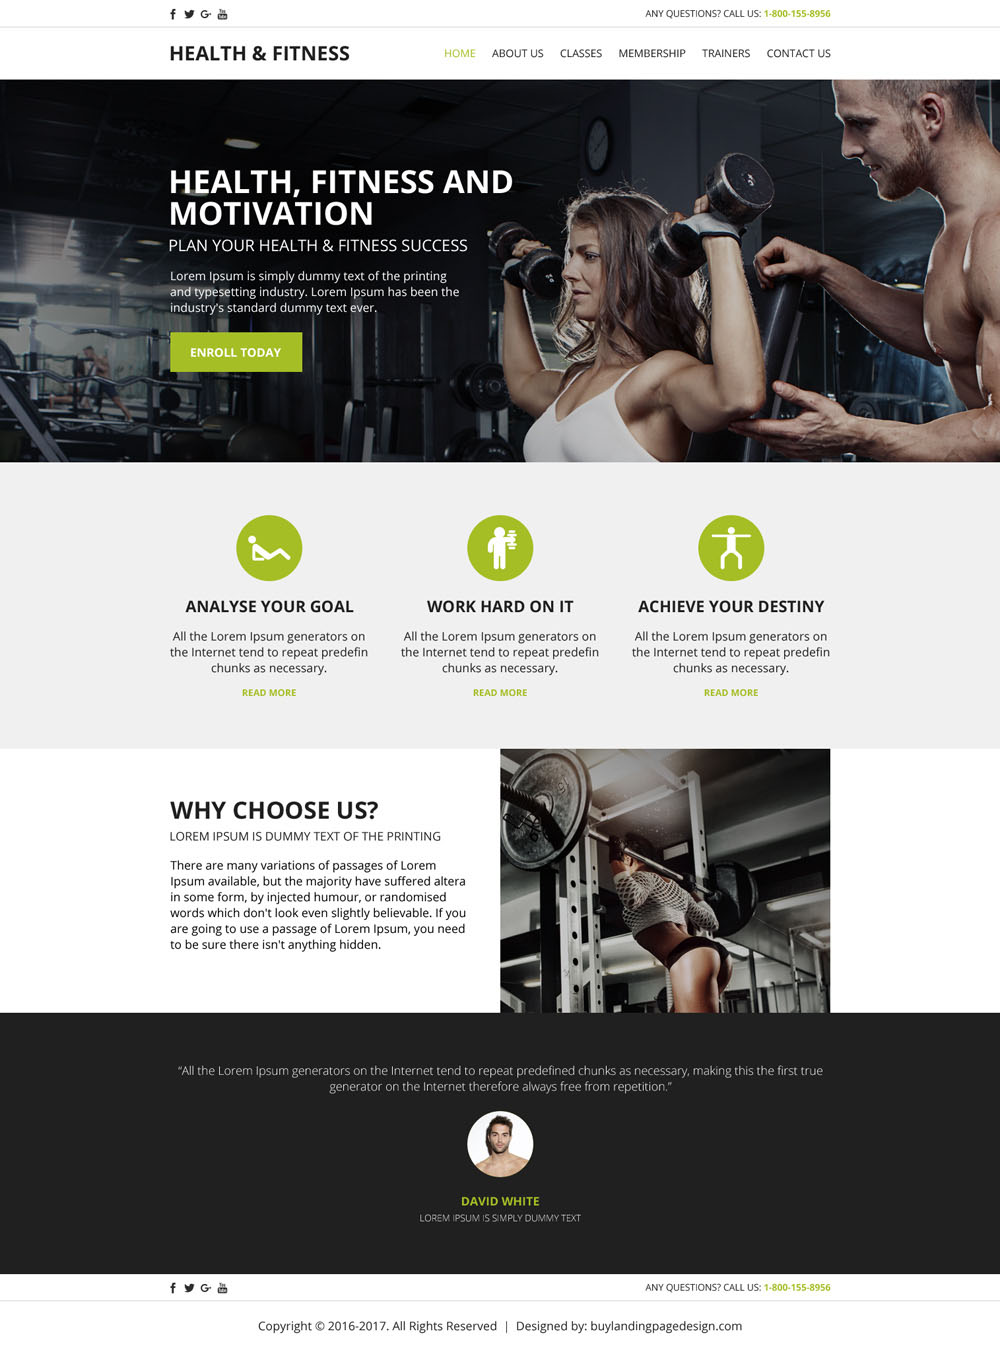 health-and-fitness-html-website-template-to-create-your-professional-health-and-fitness-website-index-page-001